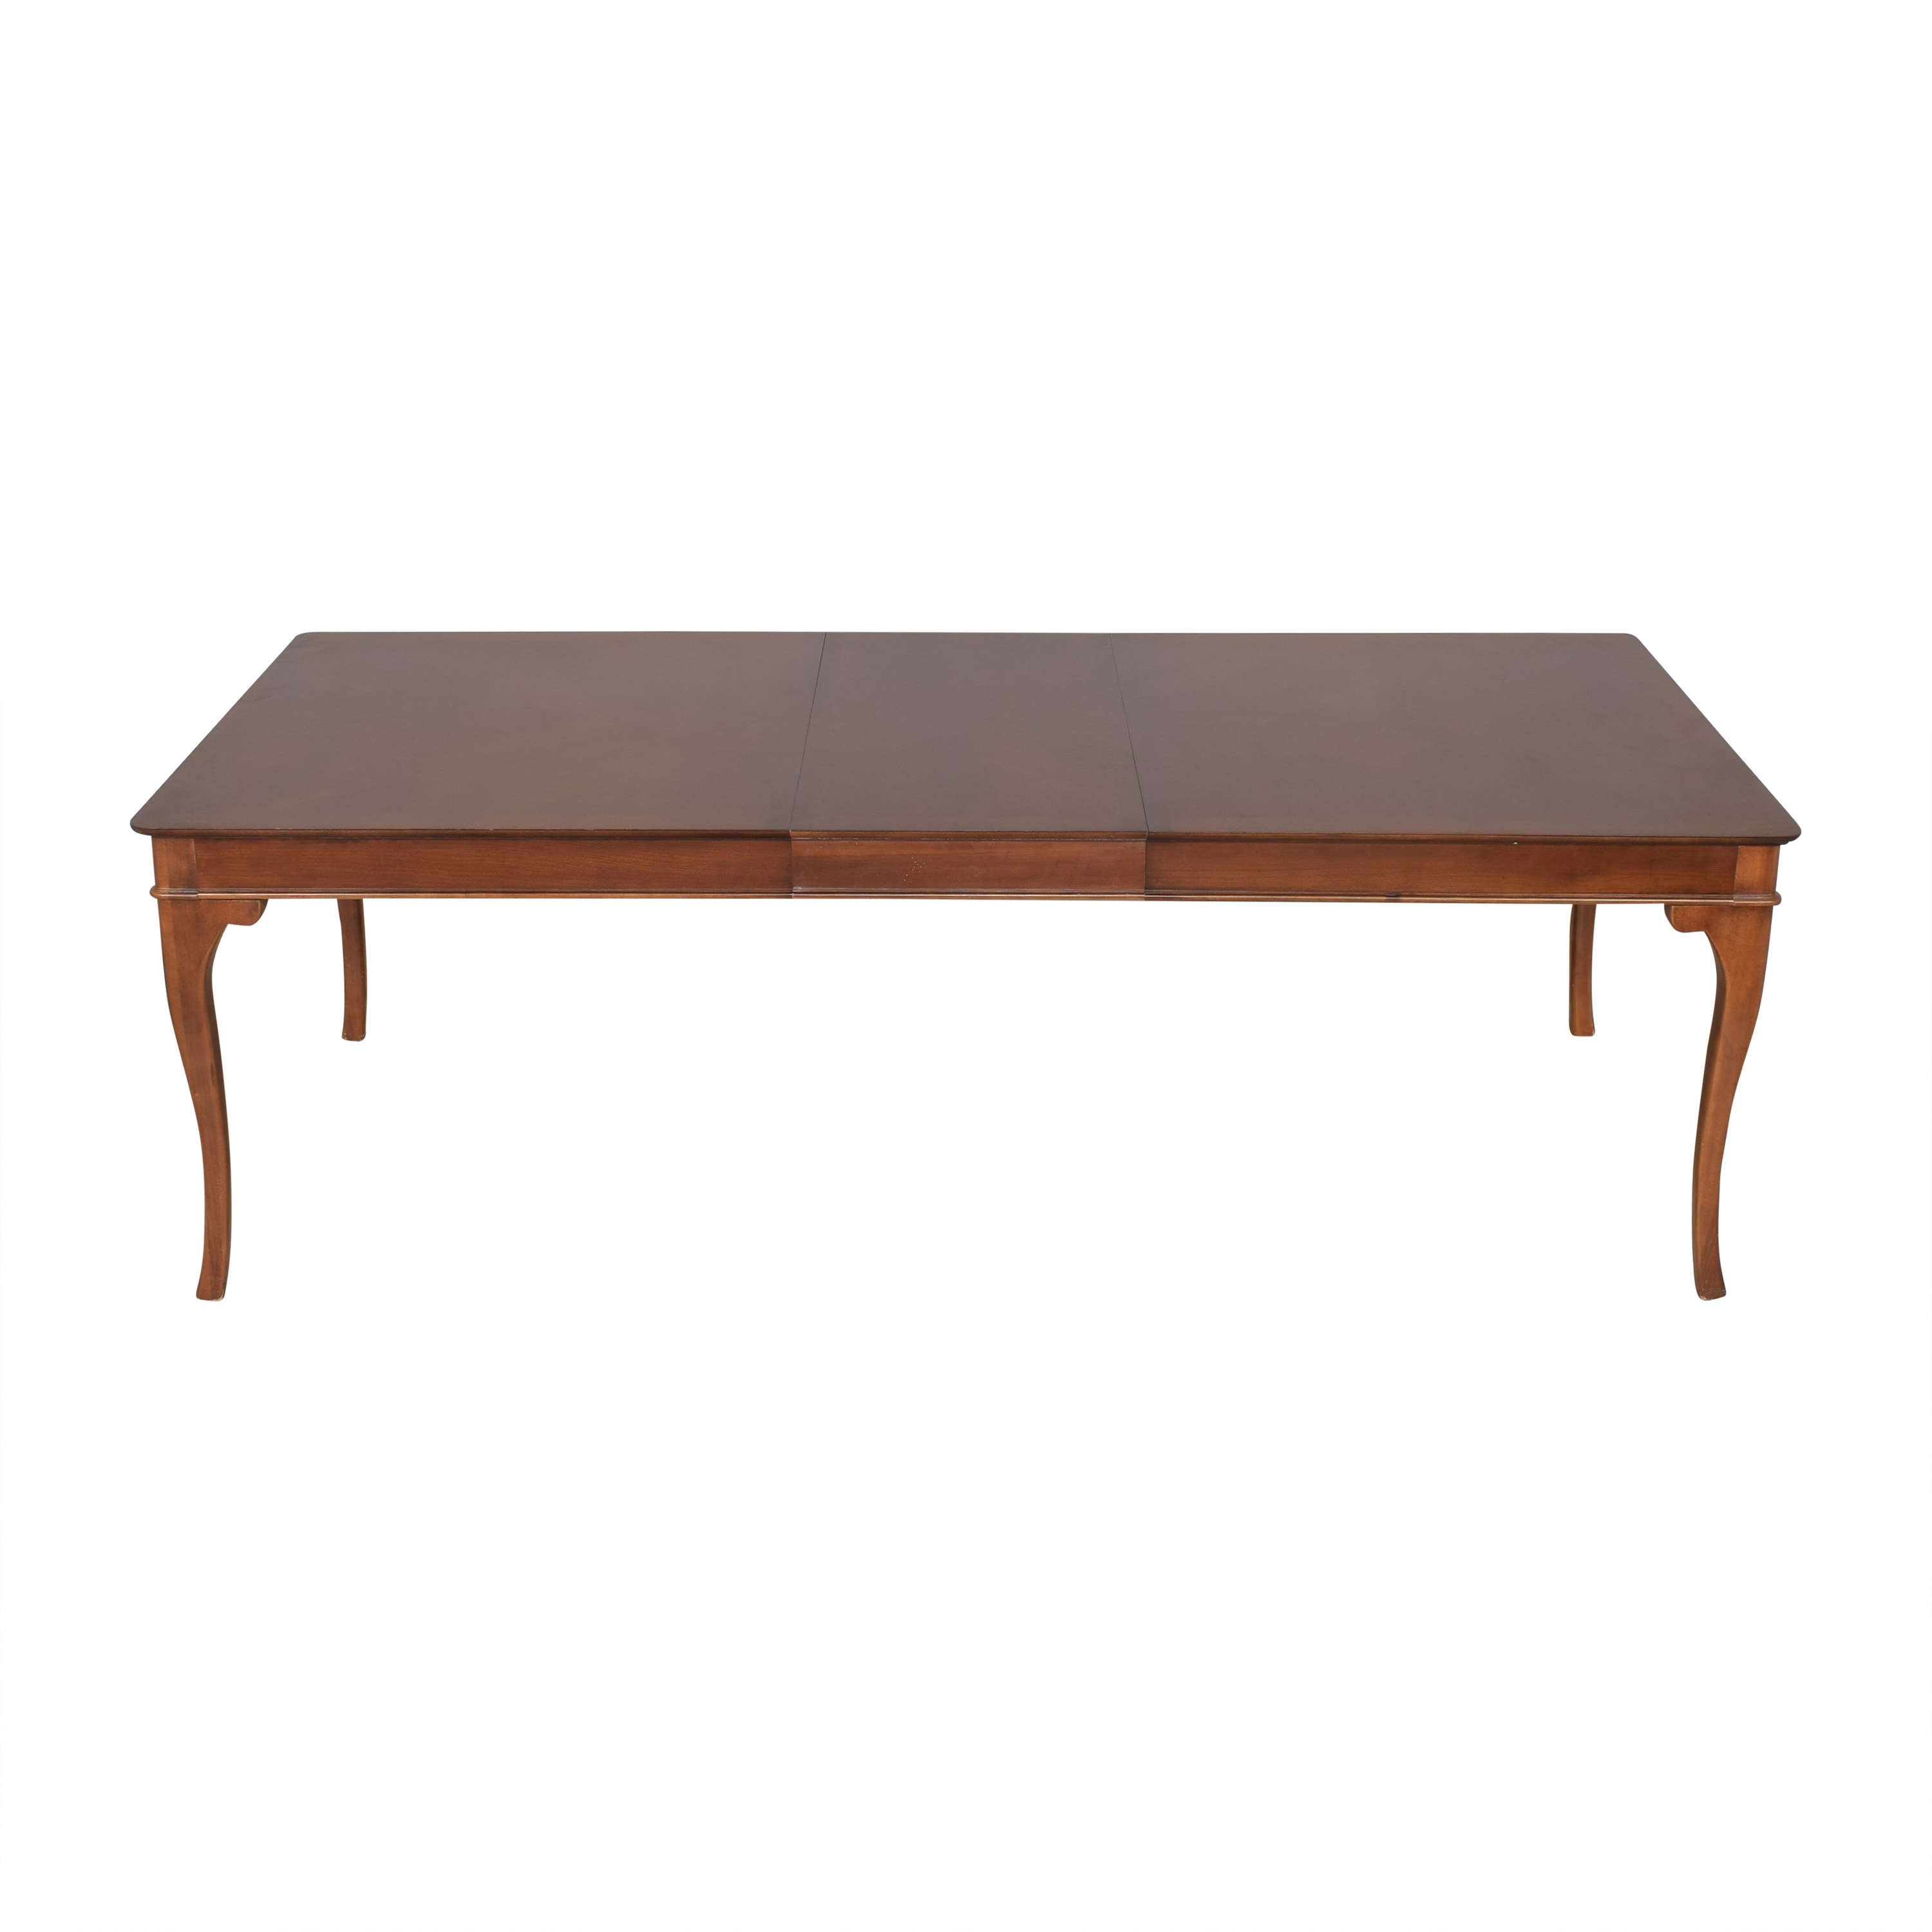 Drexel Heritage  Drexel Heritage Extendable Dining Table second hand